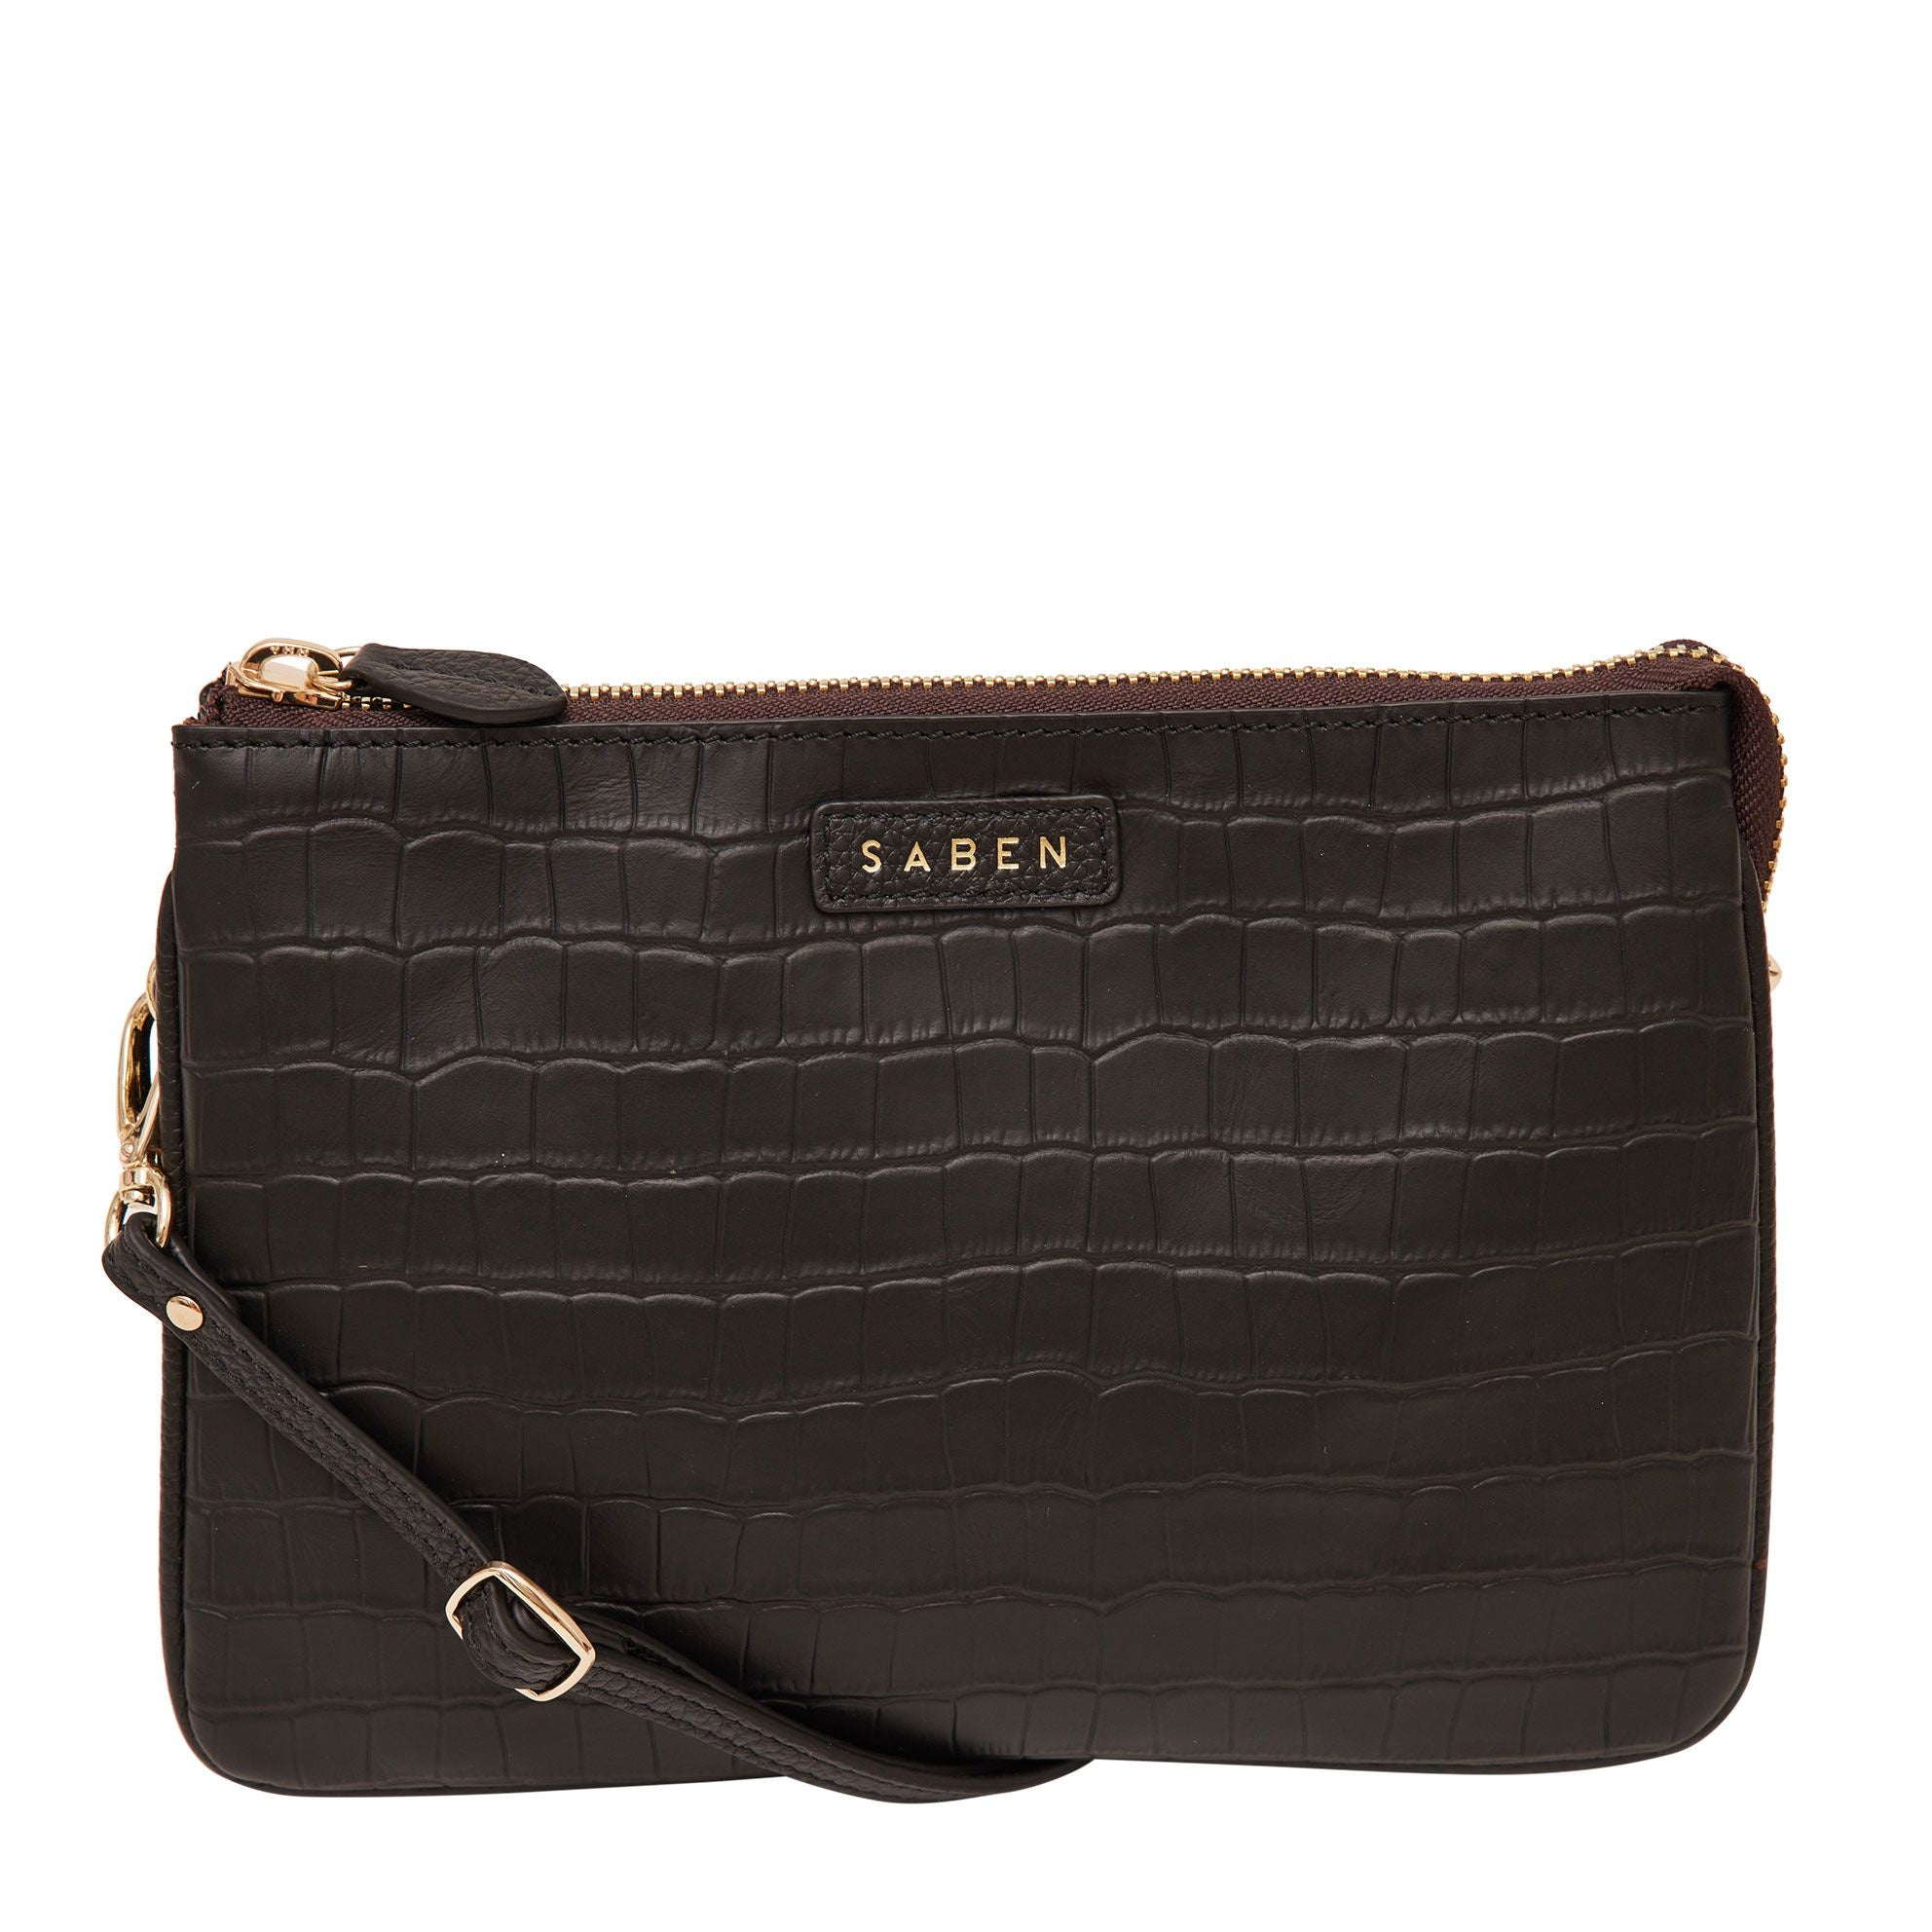 Tilly's Big Sis Bag / Black Croc